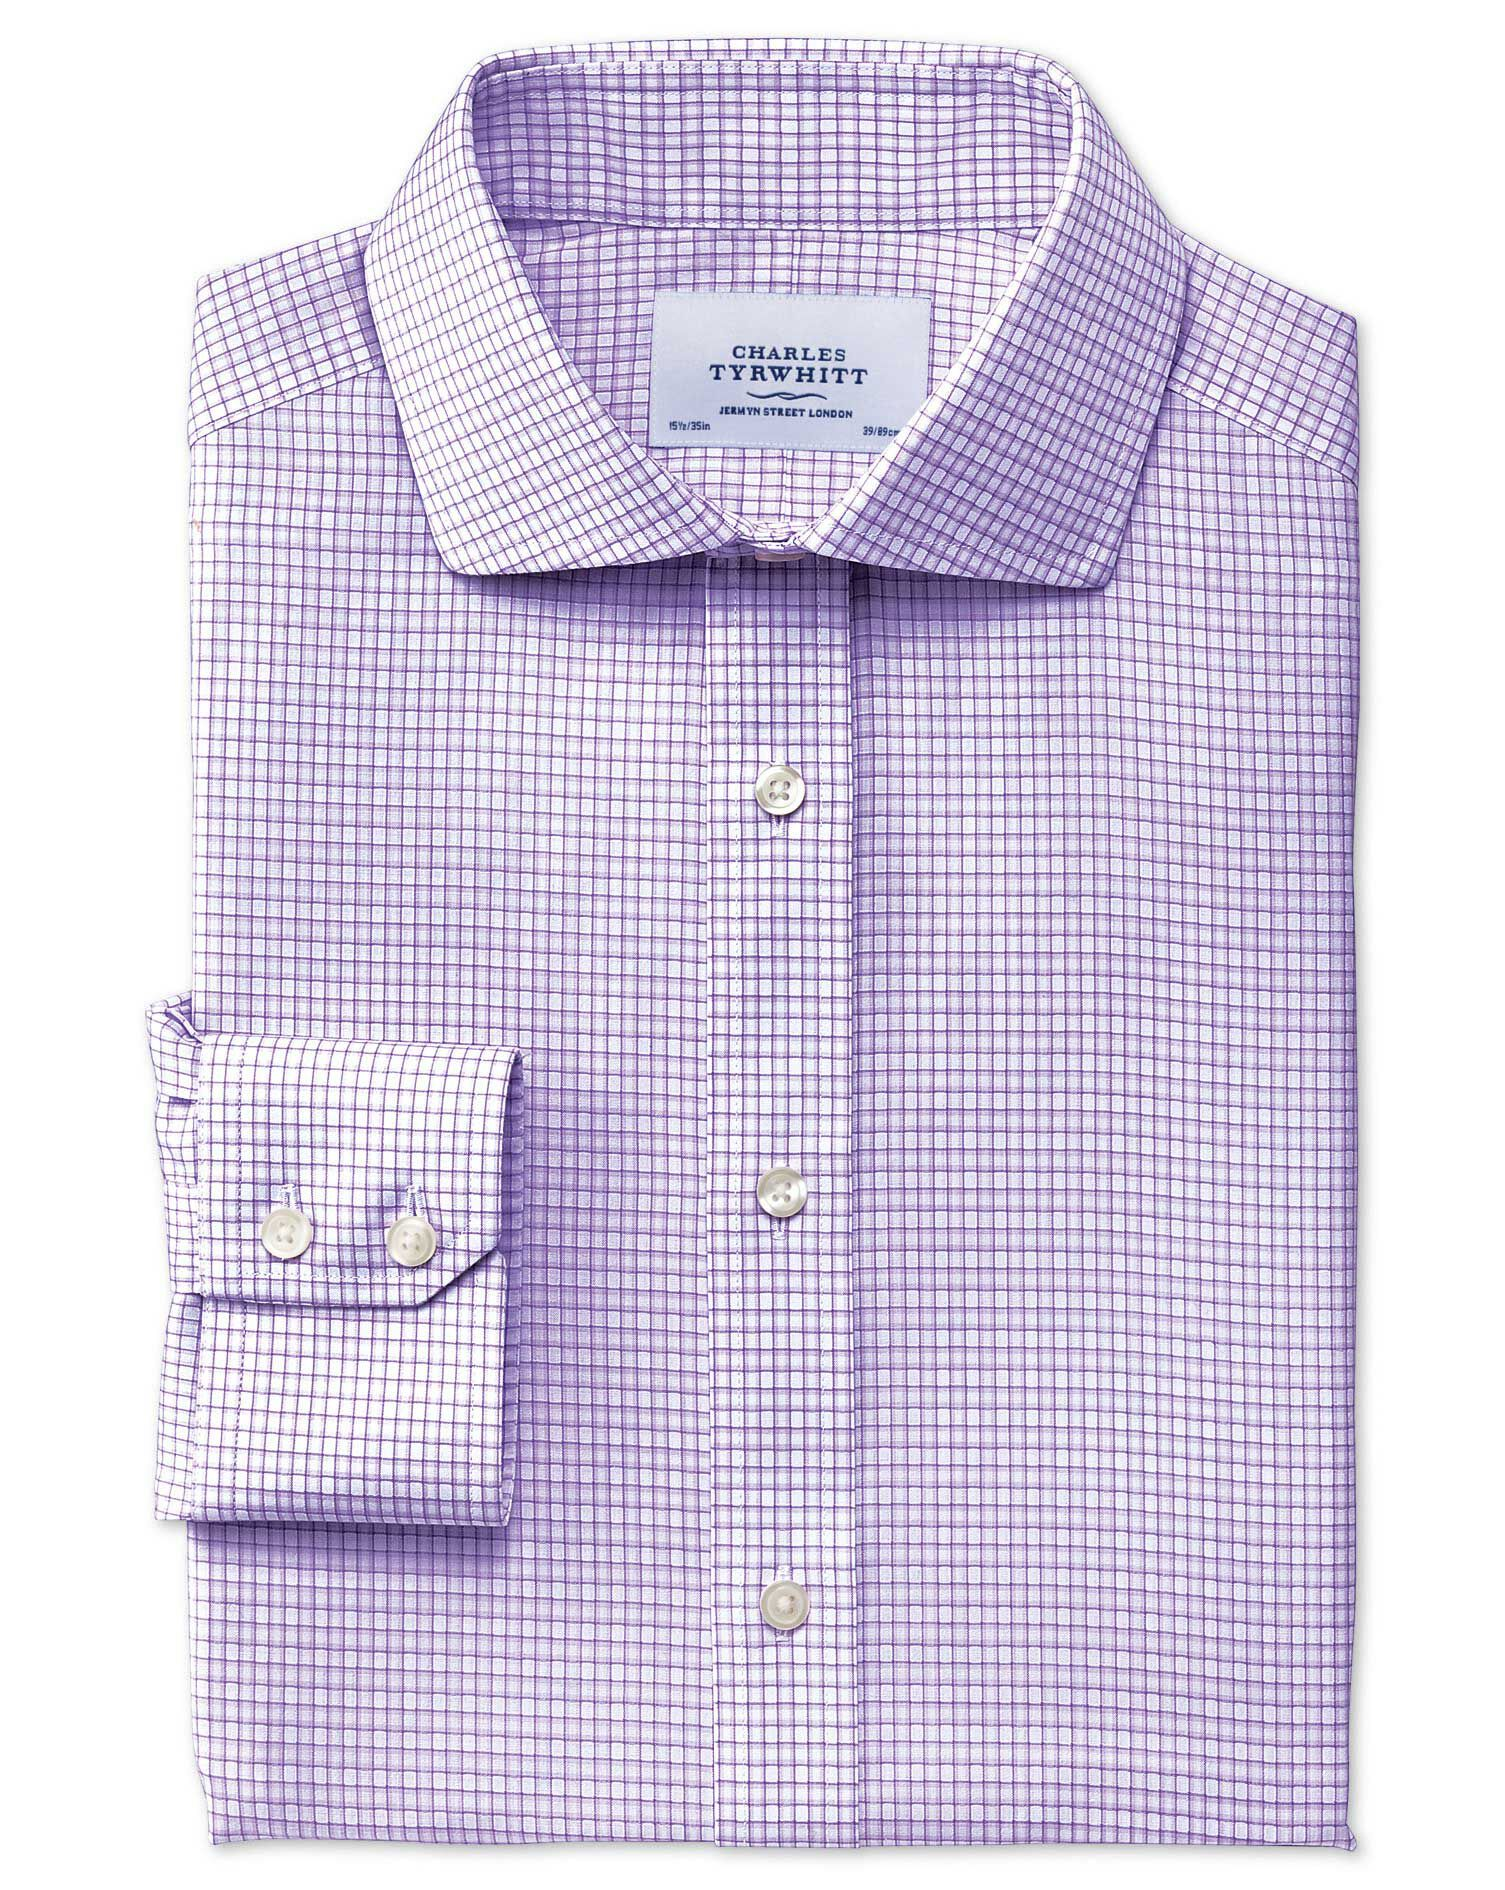 Charles Tyrwhitt Slim Fit Cutaway Collar Non-Iron Dobby Check Lilac Cotton Formal Shirt Size 15/35